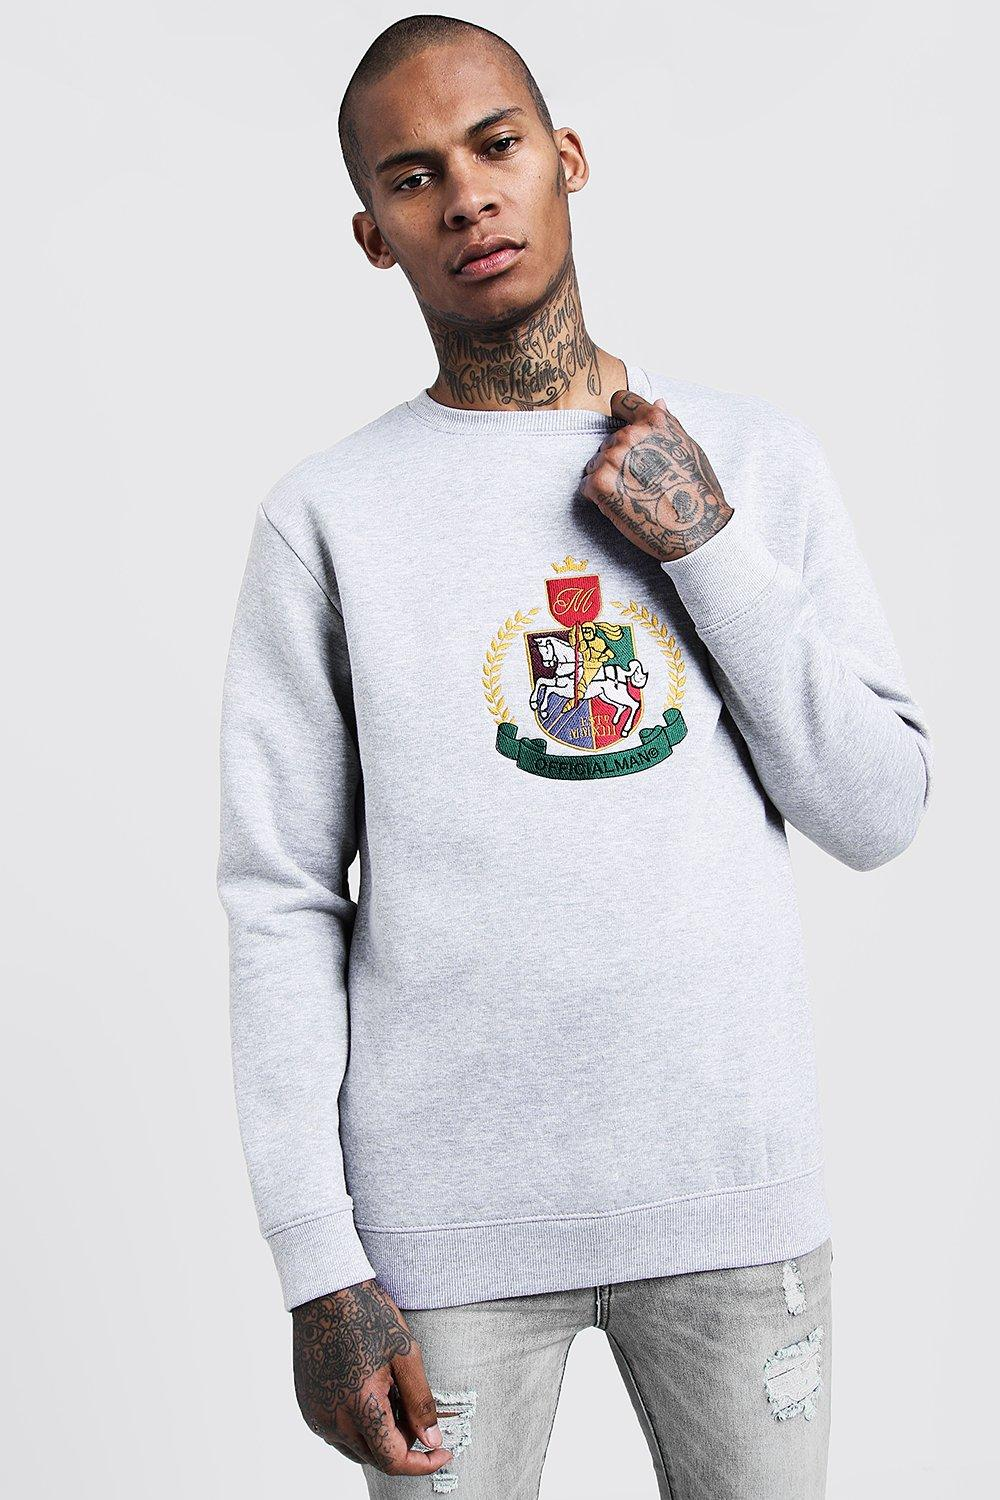 Herald MAN Embroidered Sweater